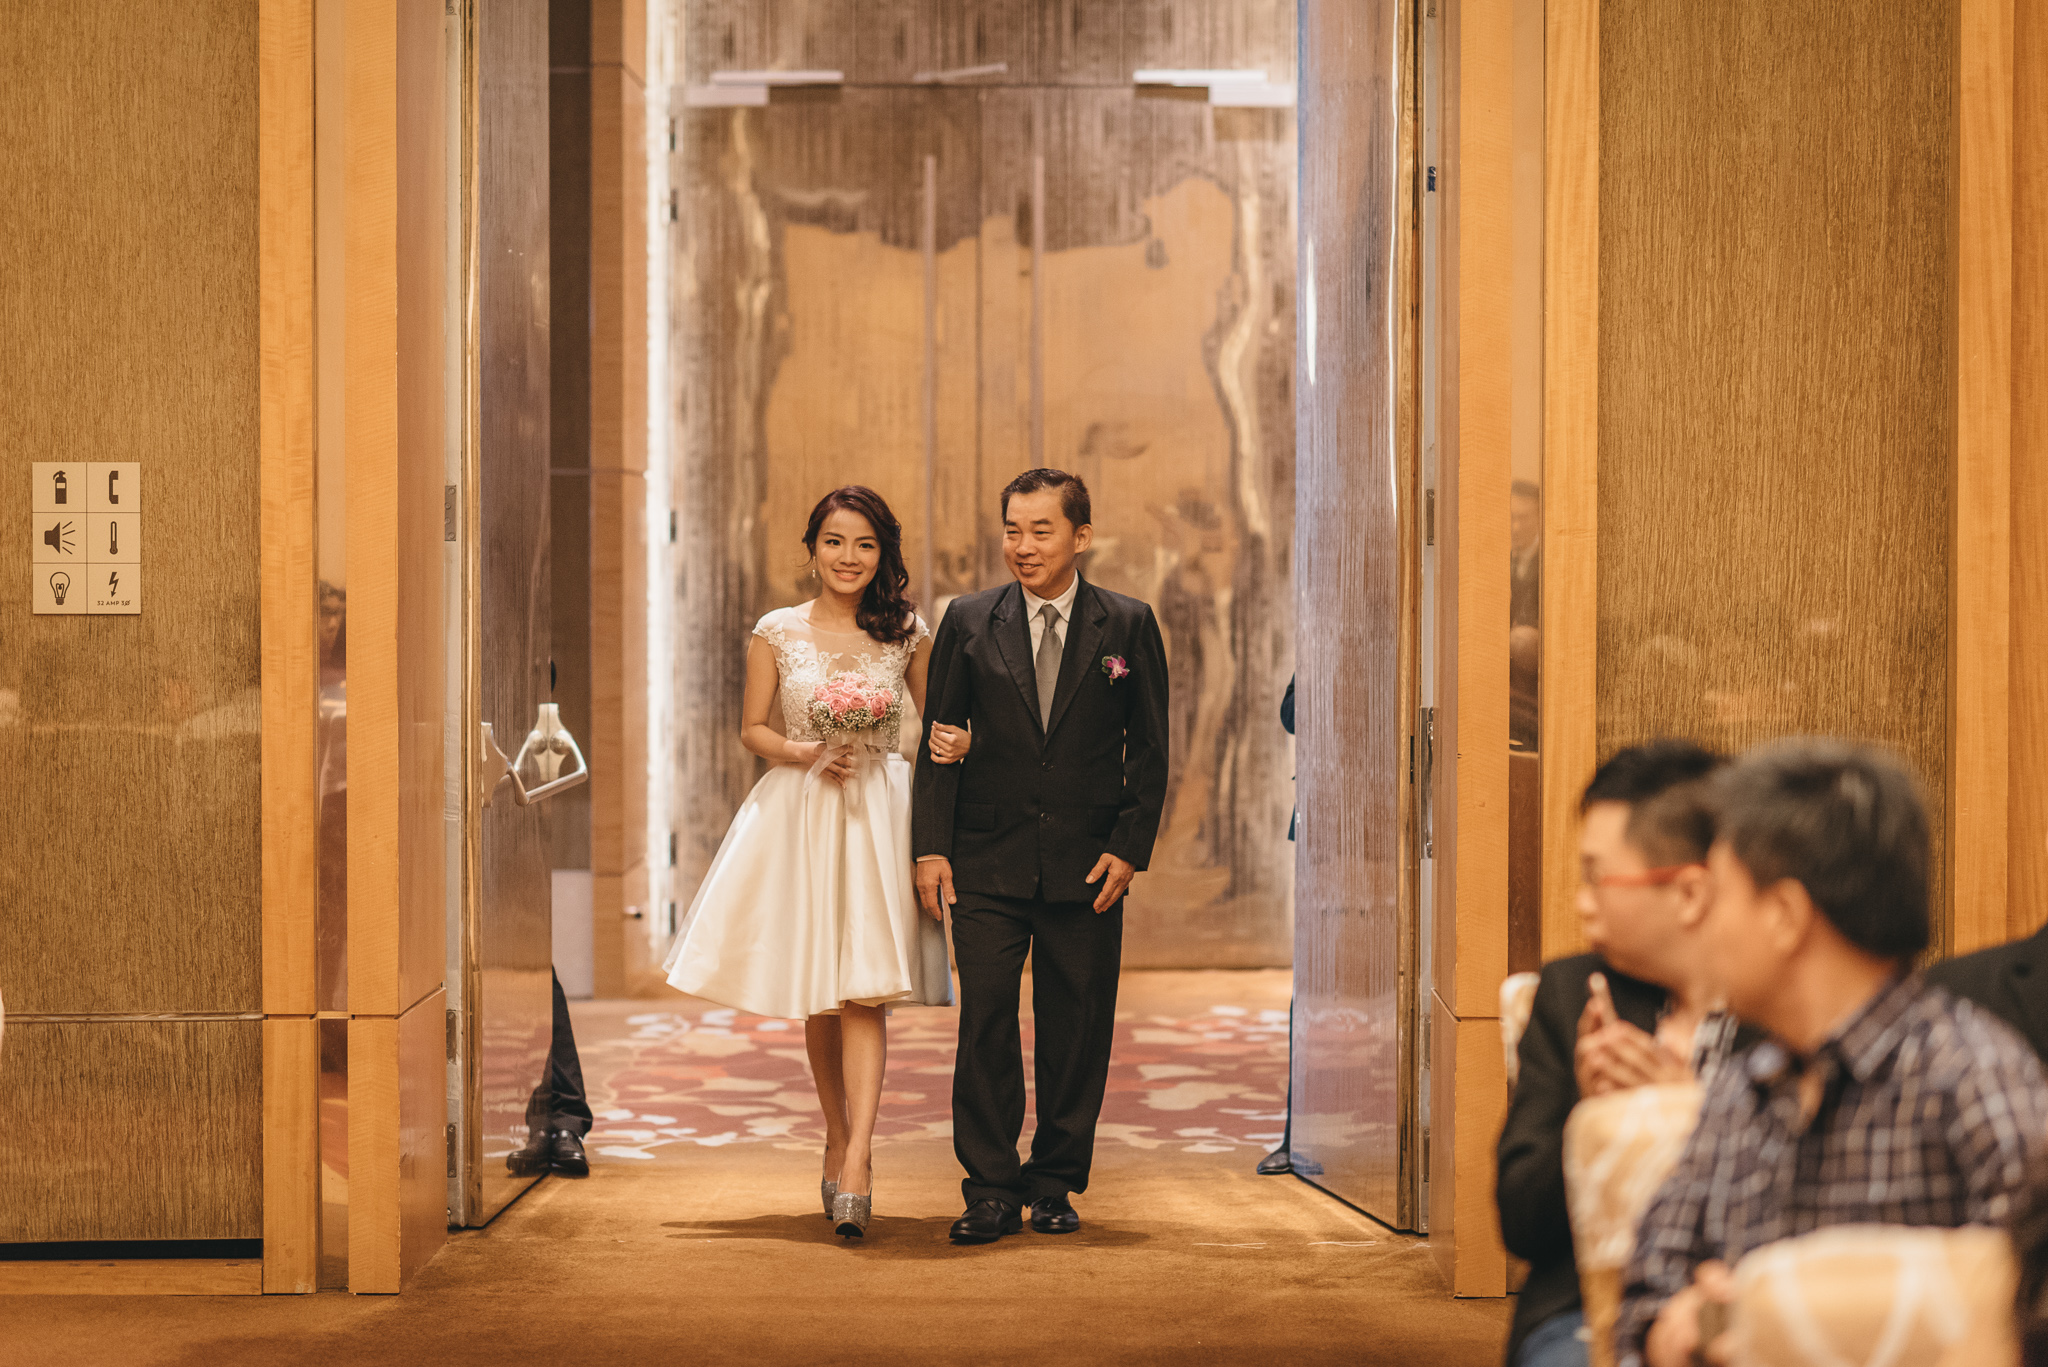 Fiona & Terence Wedding Day Highlights (resized for sharing) - 171.jpg